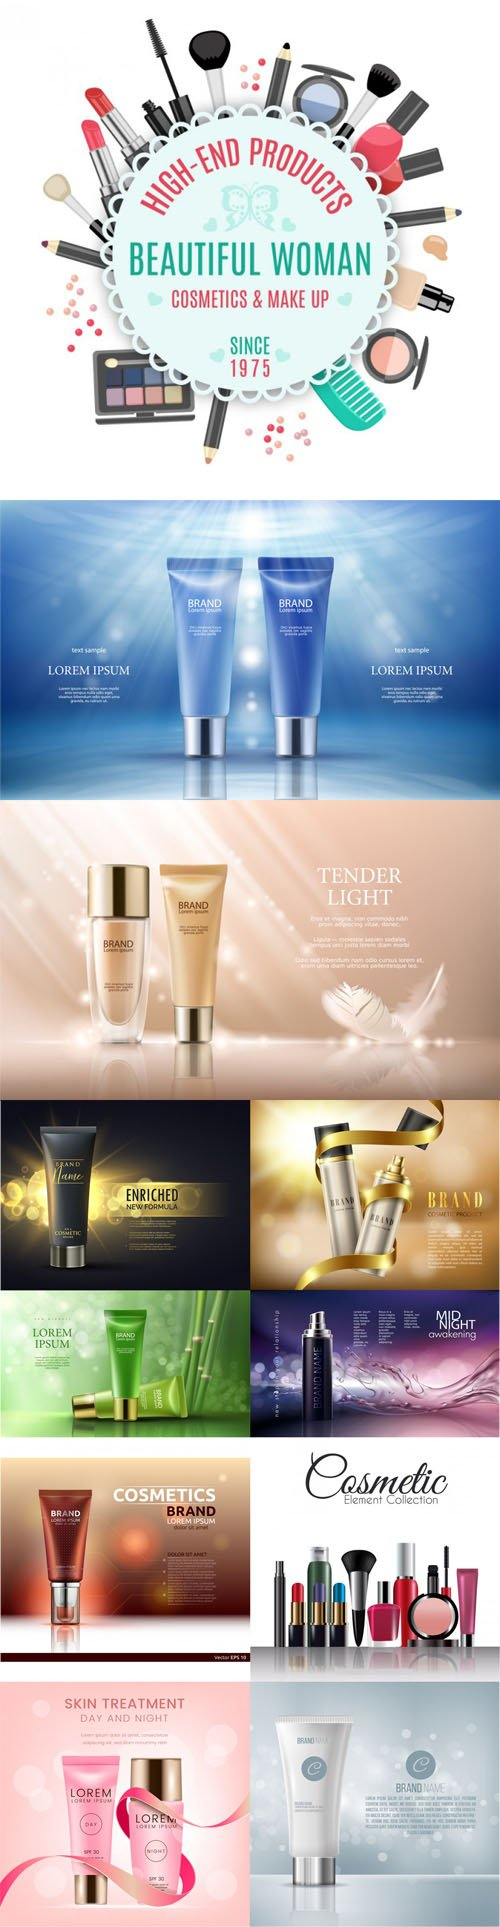 11 Realistic Cosmetic Brand Templates Vector